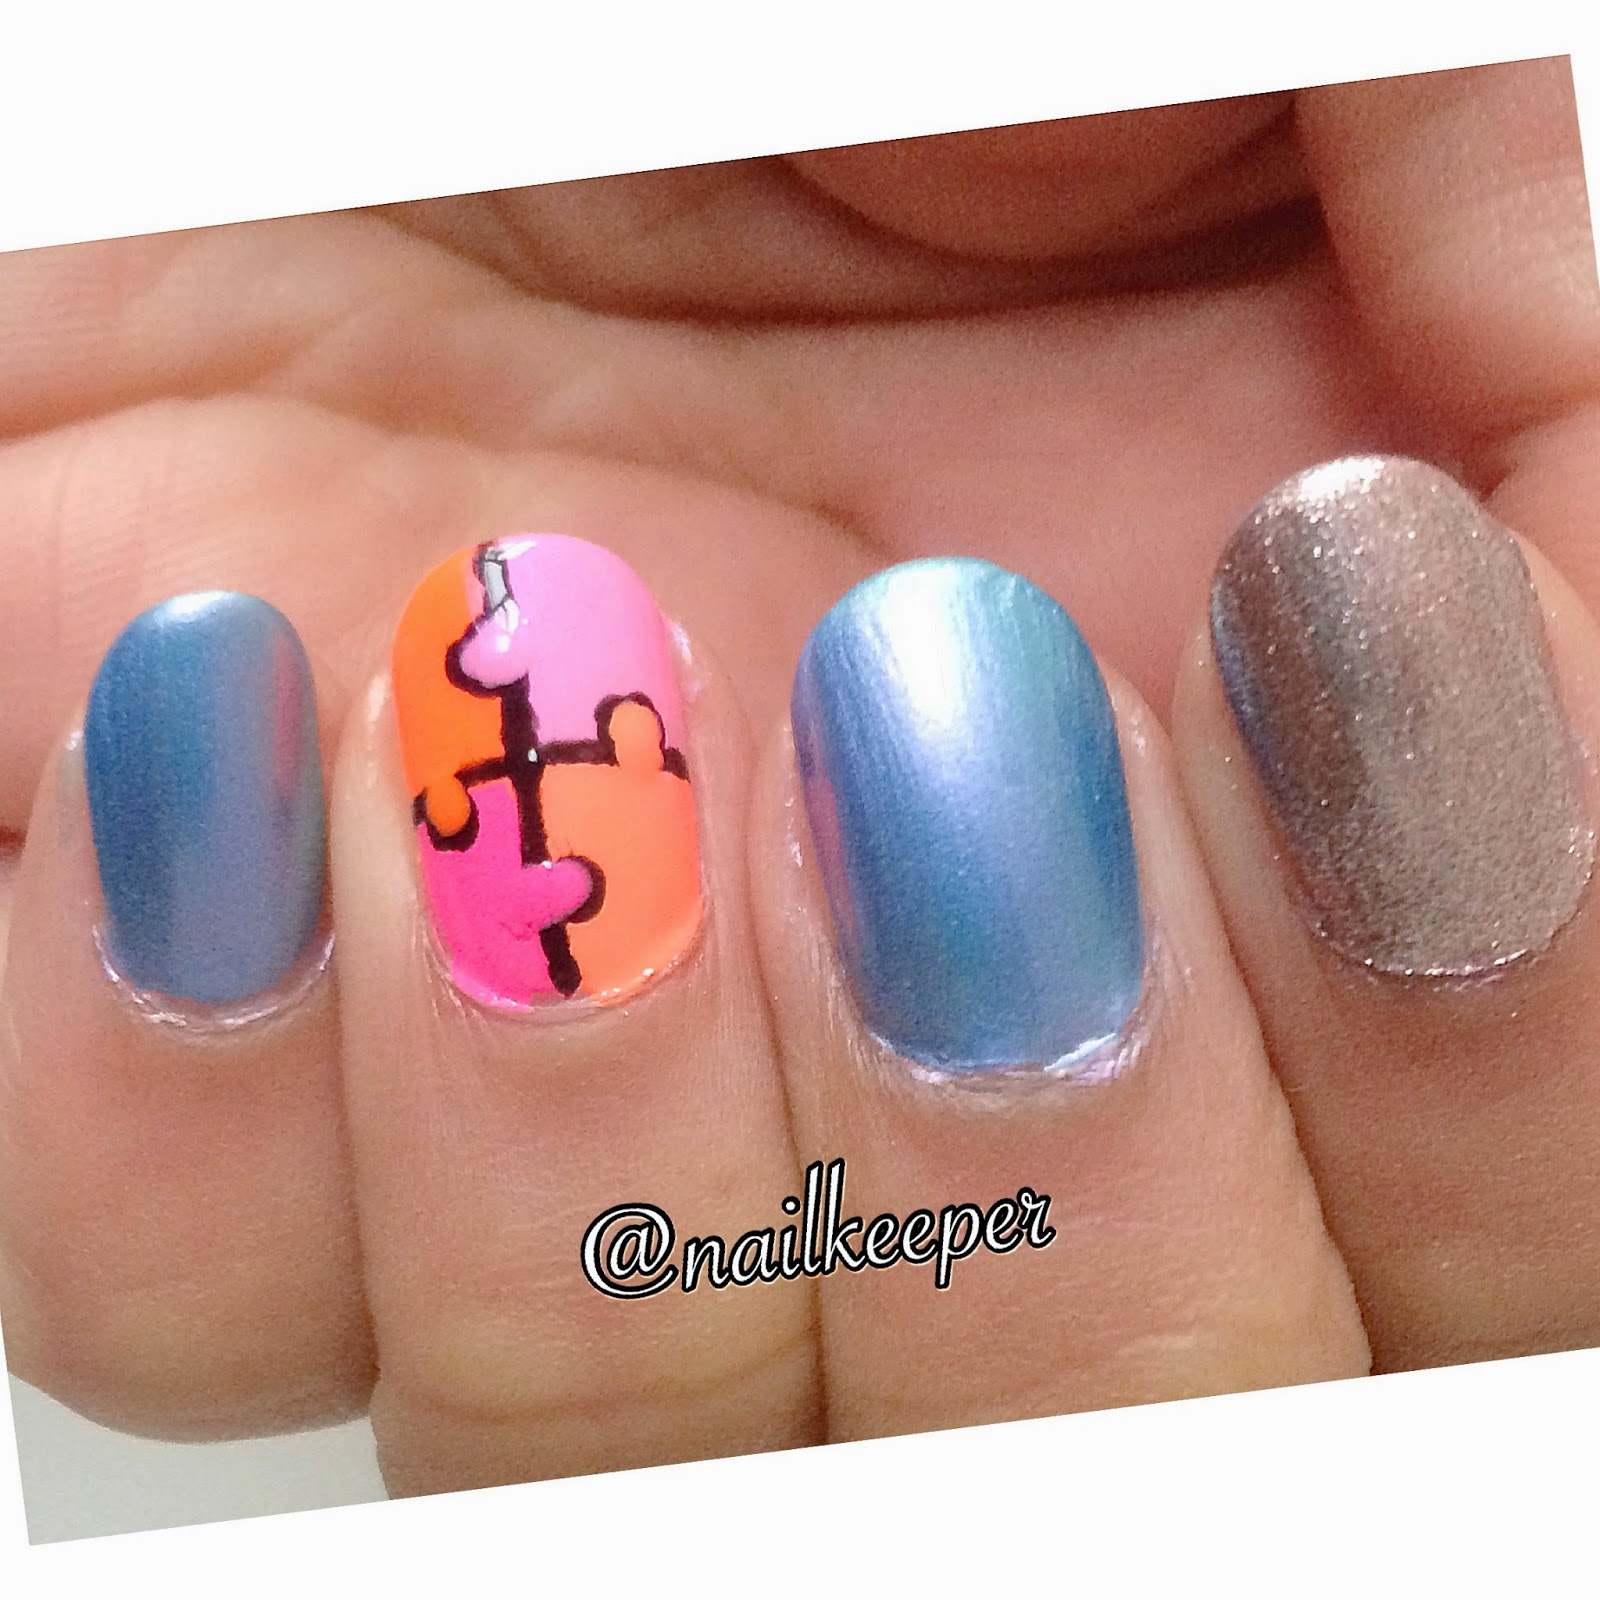 Nailkeeper: Jigsaw puzzle nail art and Orly colorblast nail polish